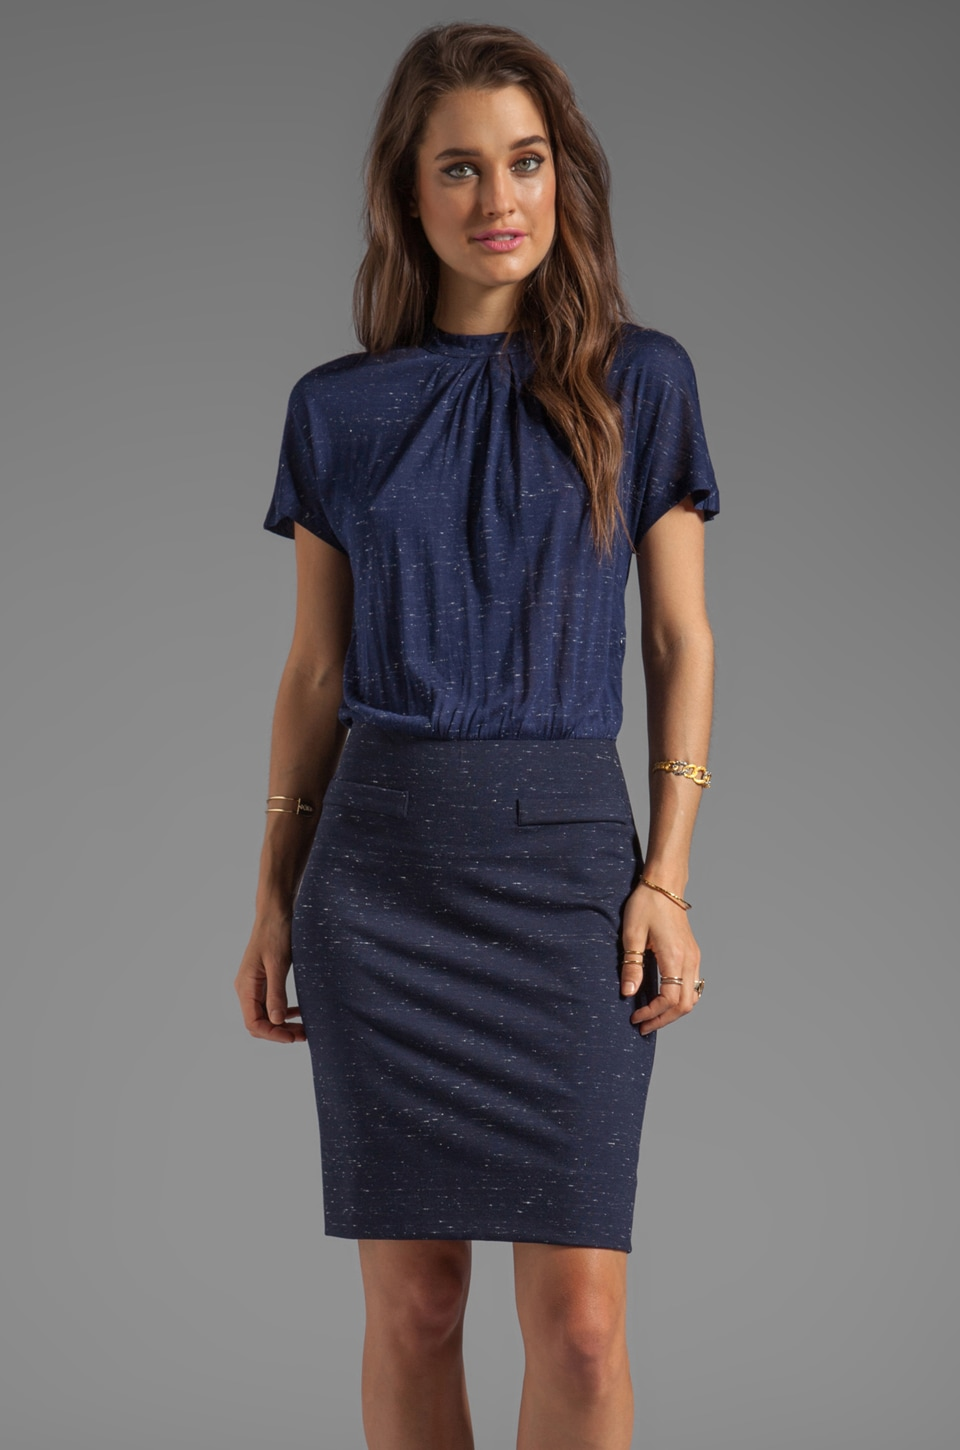 Marc by Marc Jacobs Alicia Ponte Dress in Ink Blue Melange